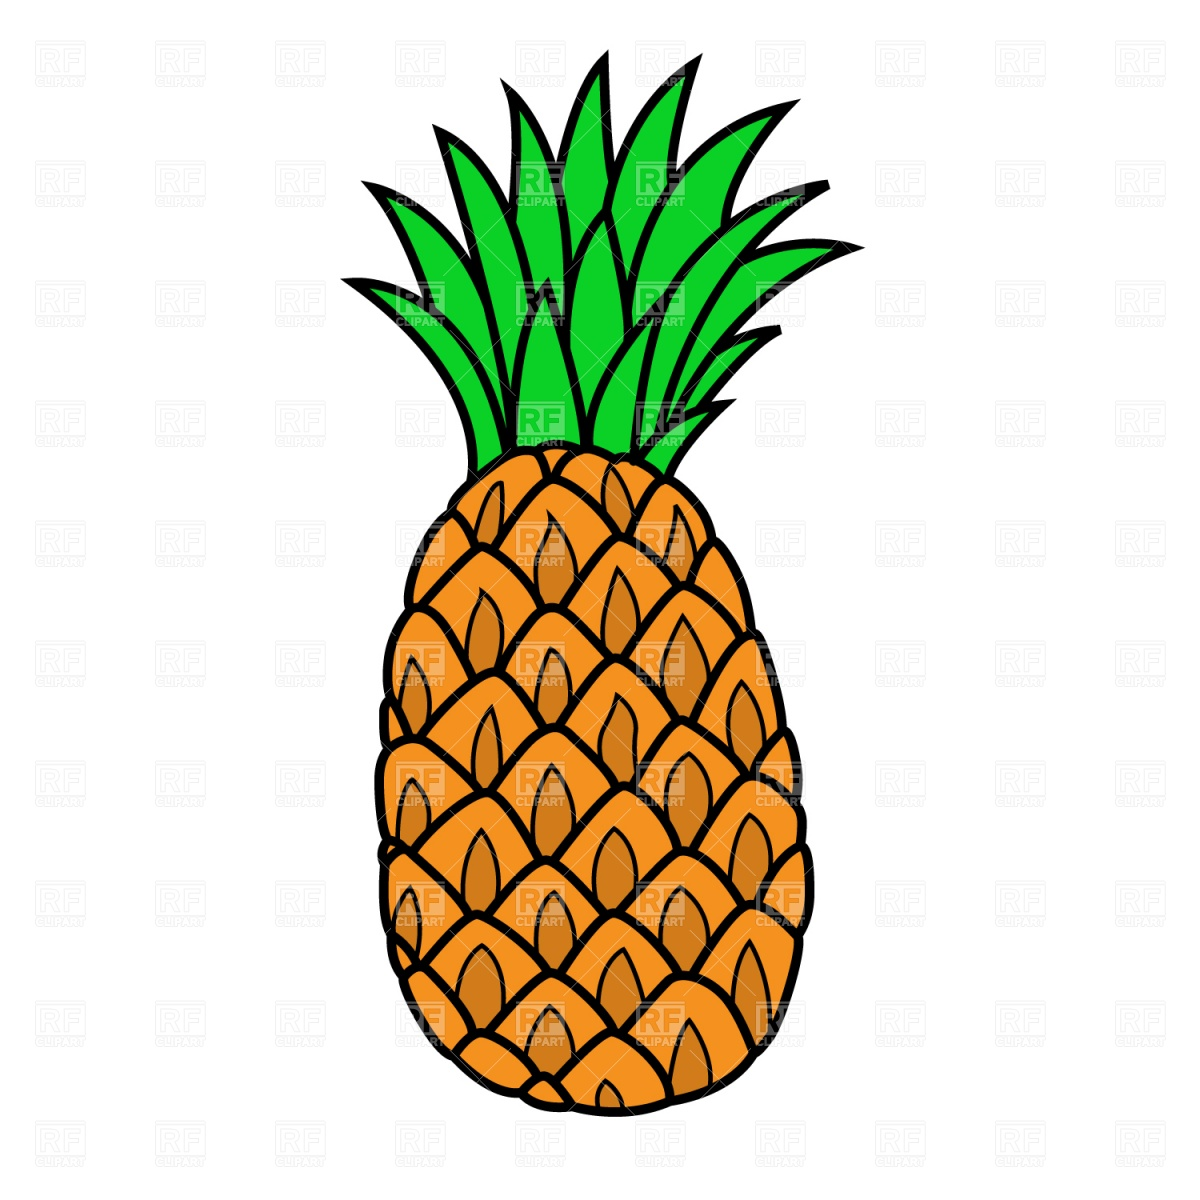 Free . 1 clipart pineapple